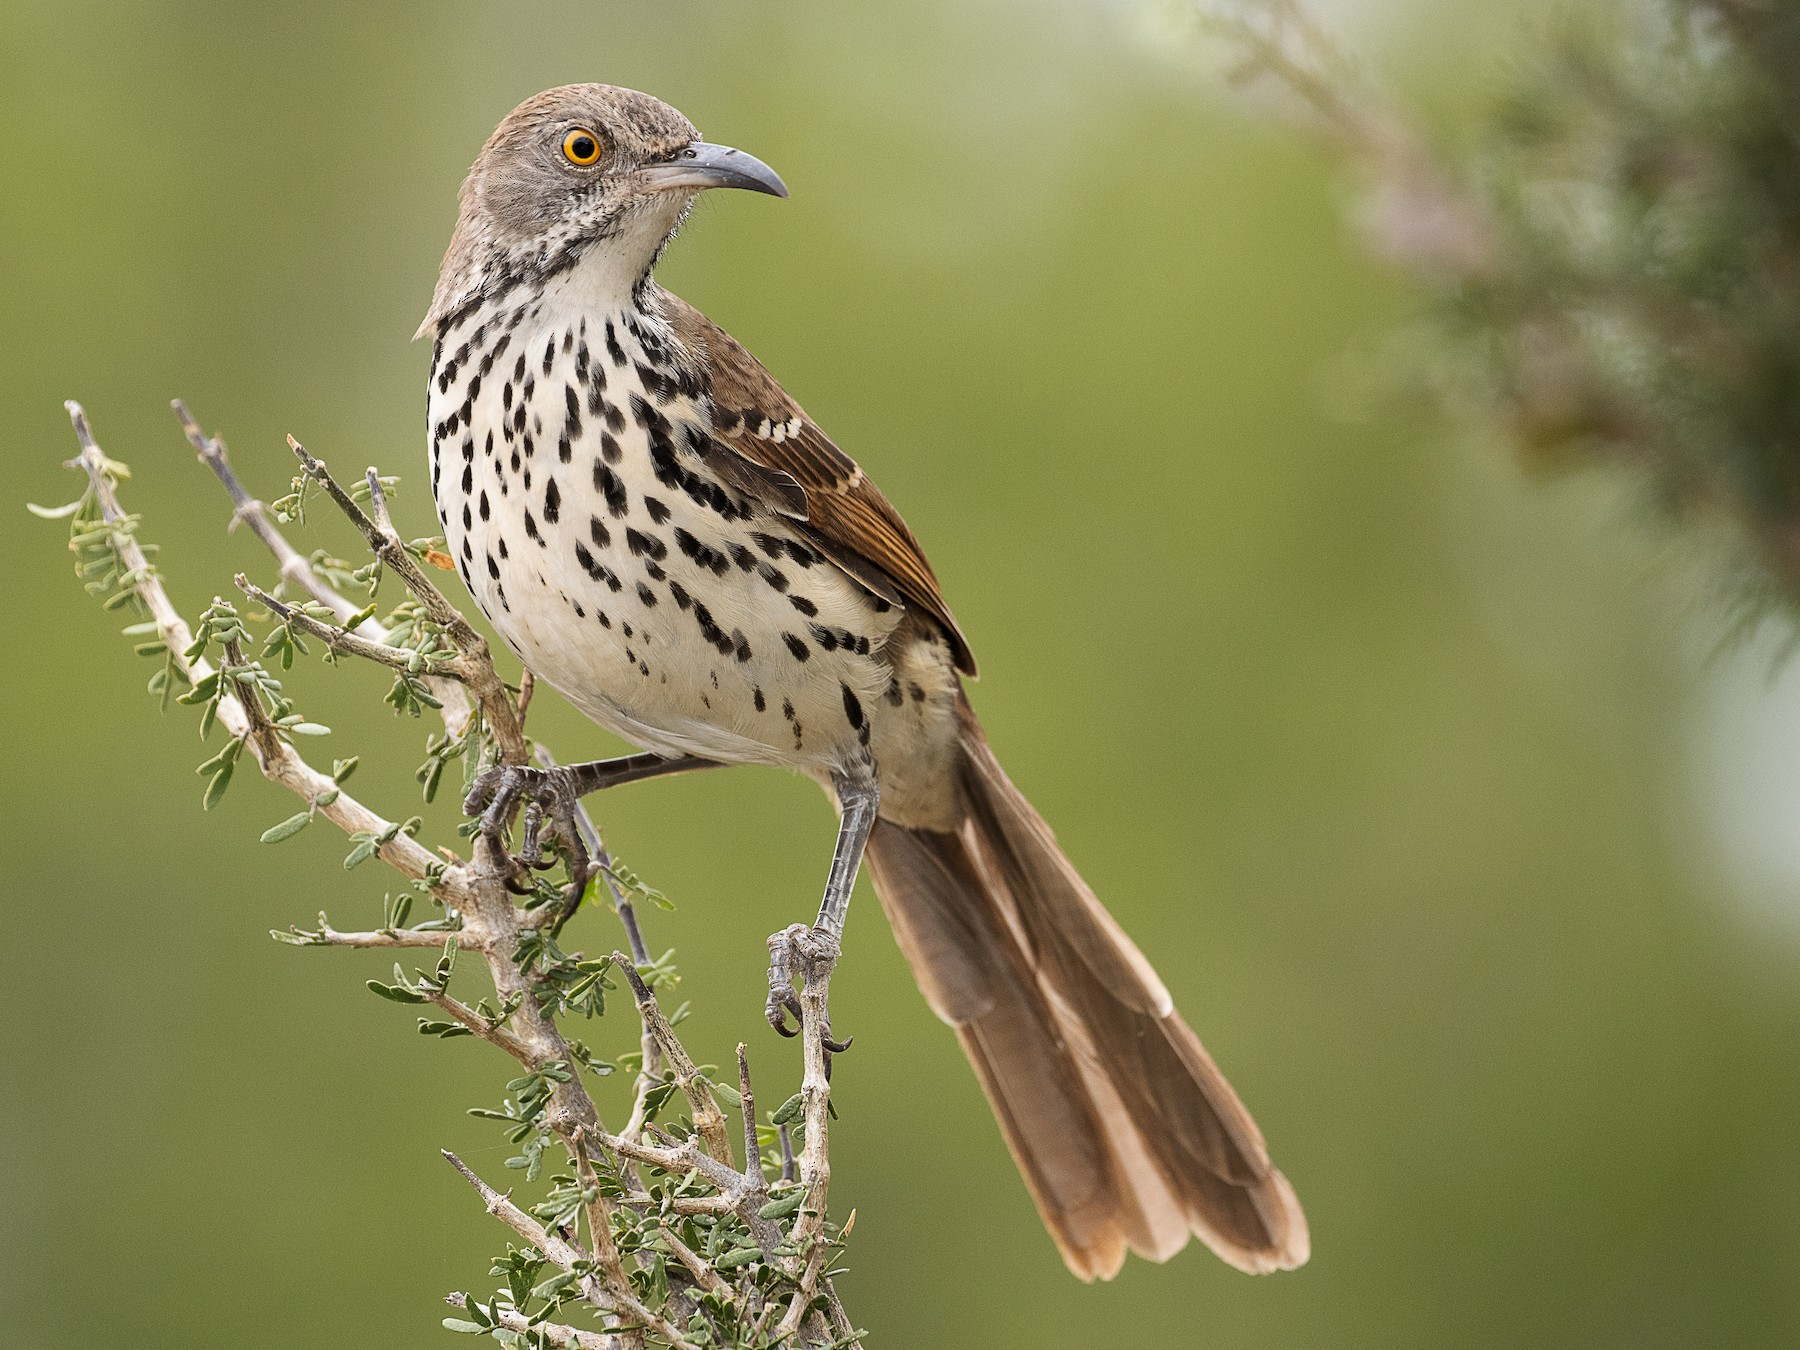 Long-billed Thrasher - mark daly